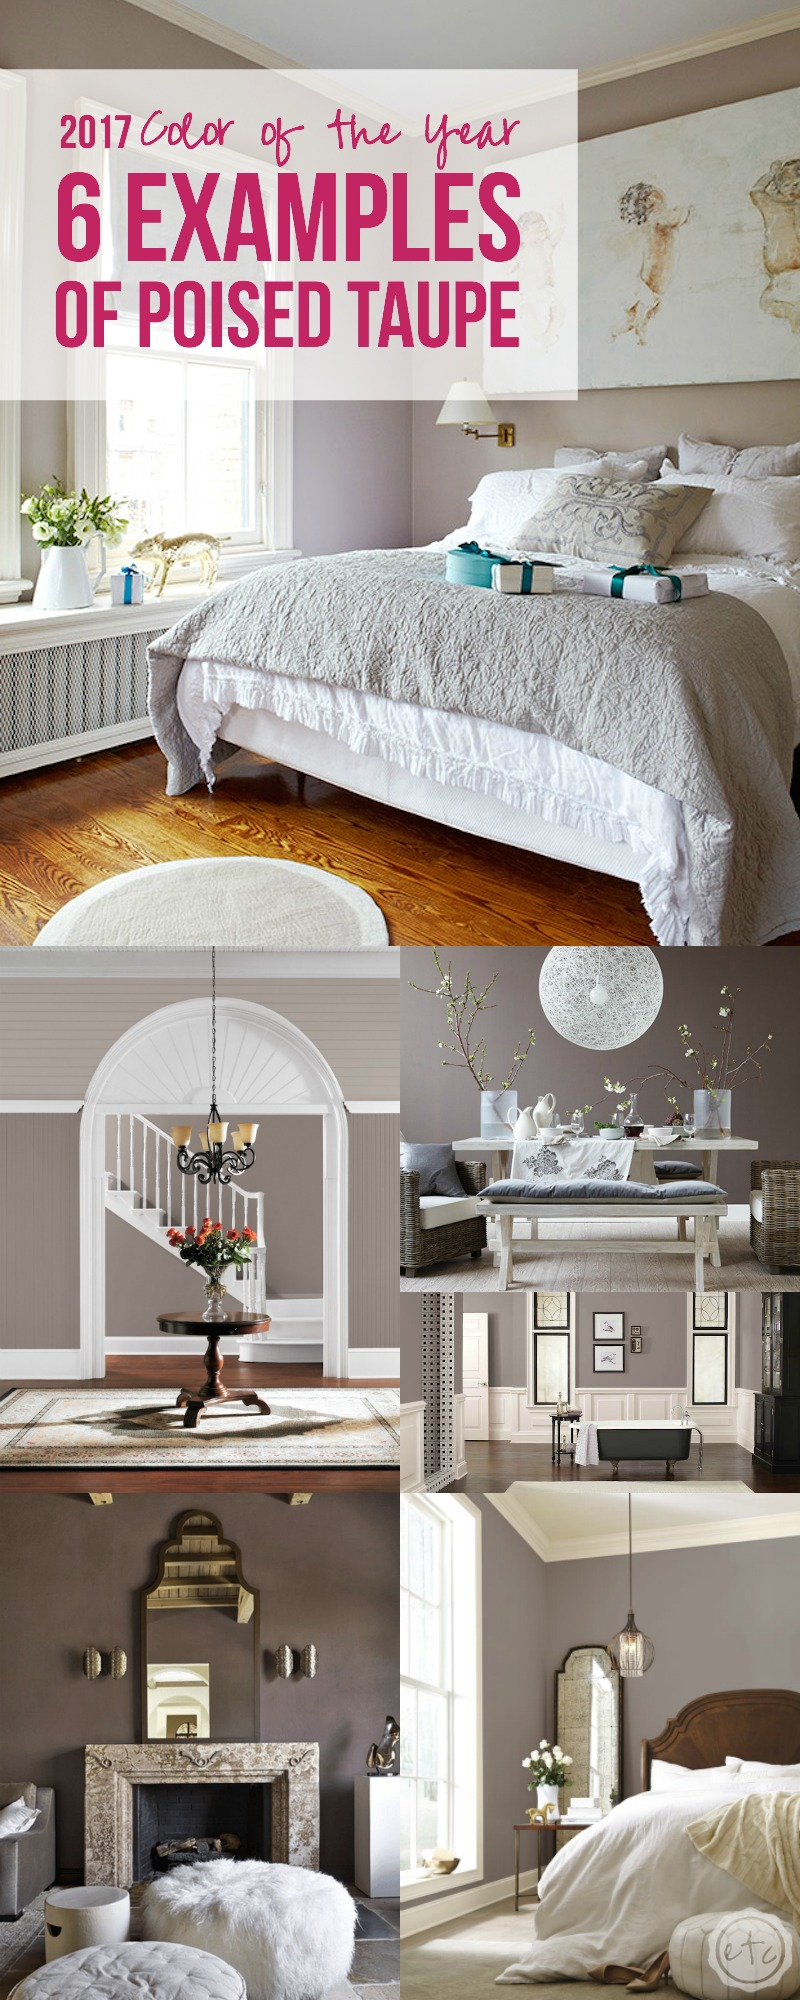 2017 Color of the Year - 6 Examples of Poised Taupe